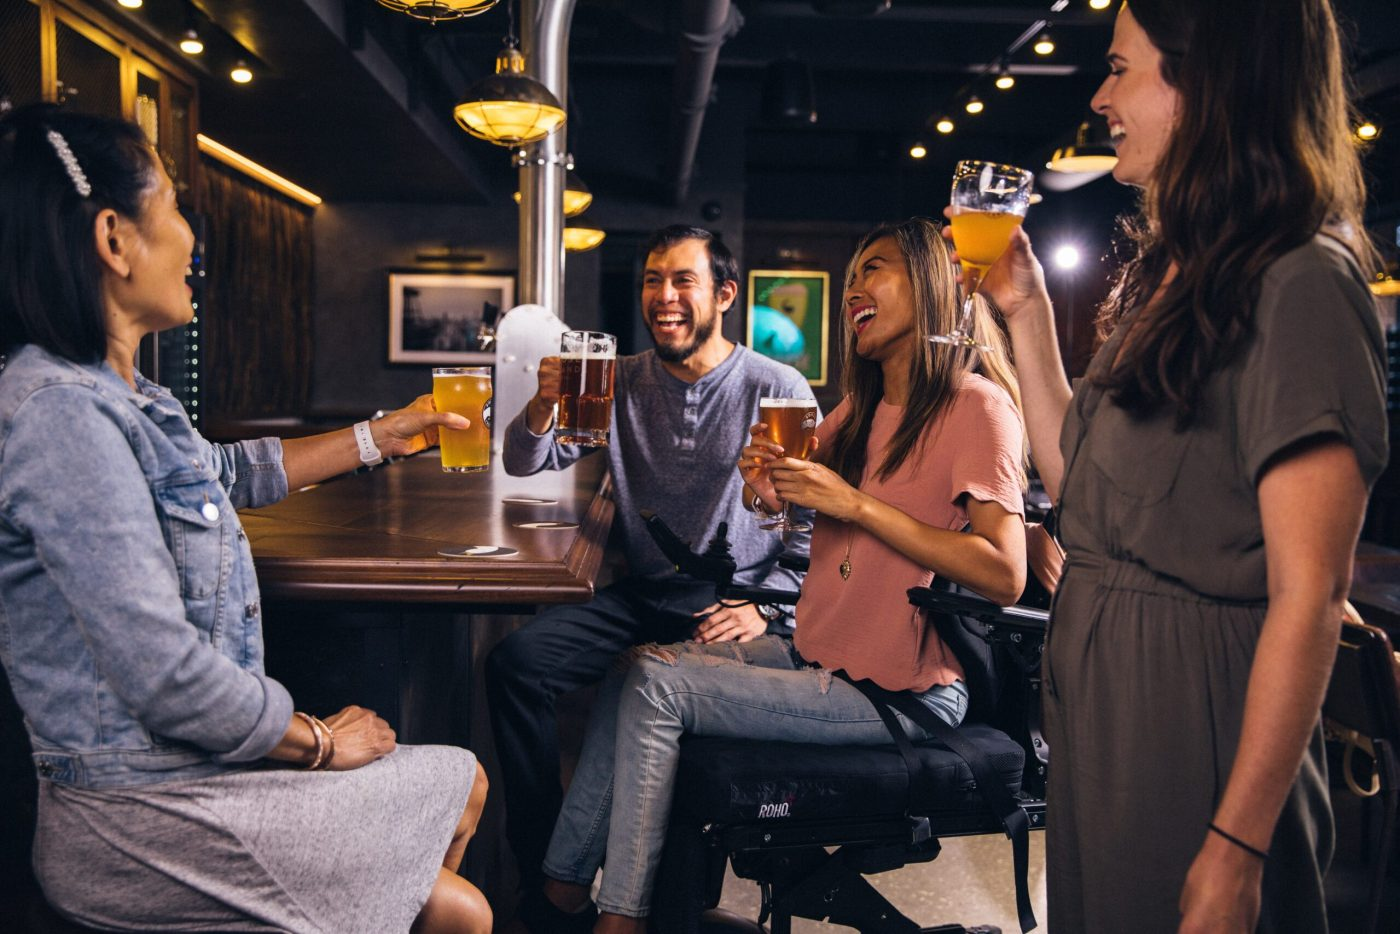 group-of-people-drinking-beer-and-having-fun-3009773